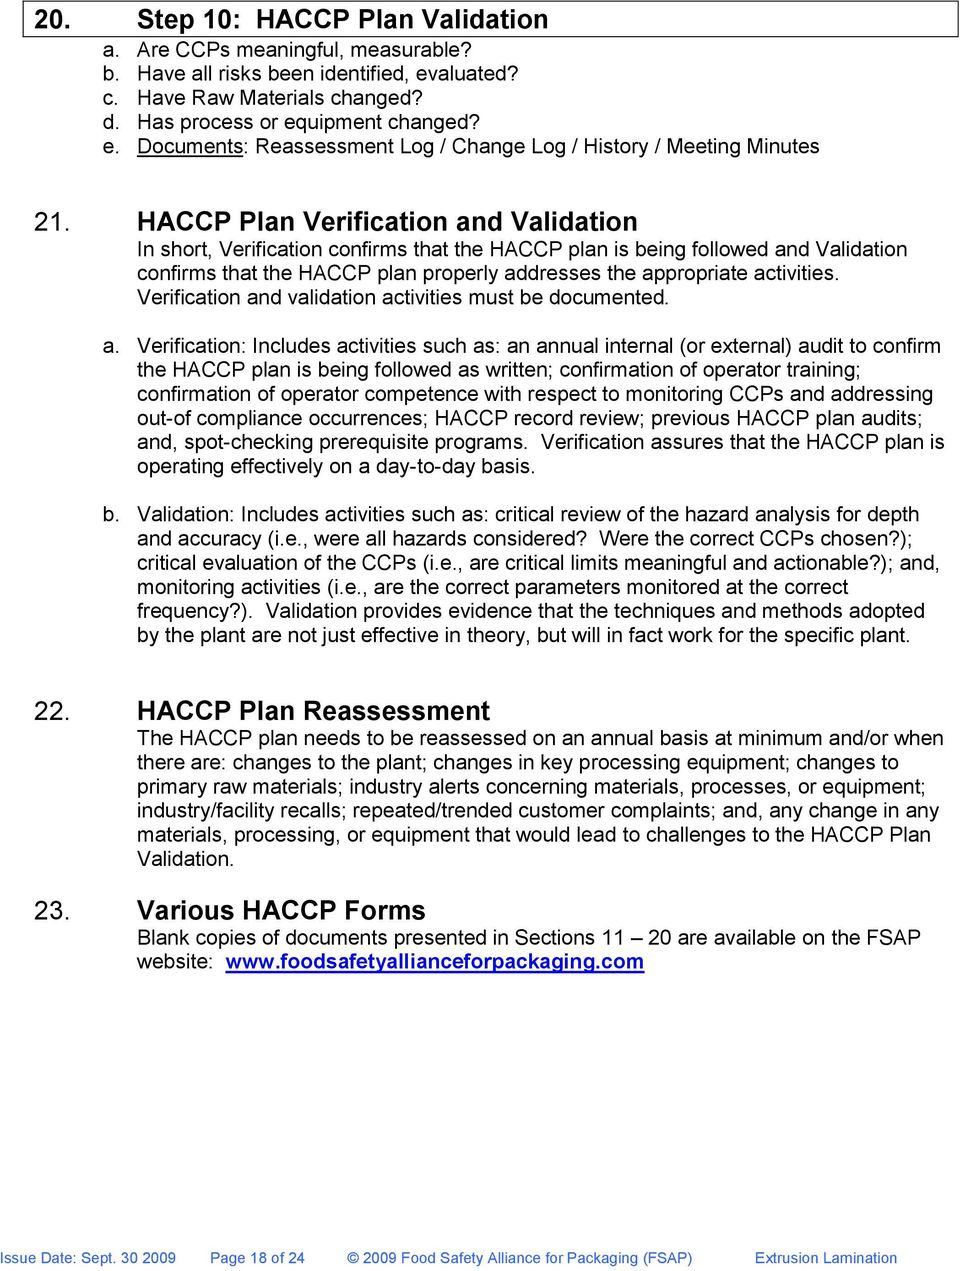 Haccp Hazard Analysis And Critical Control Points A Food Safety